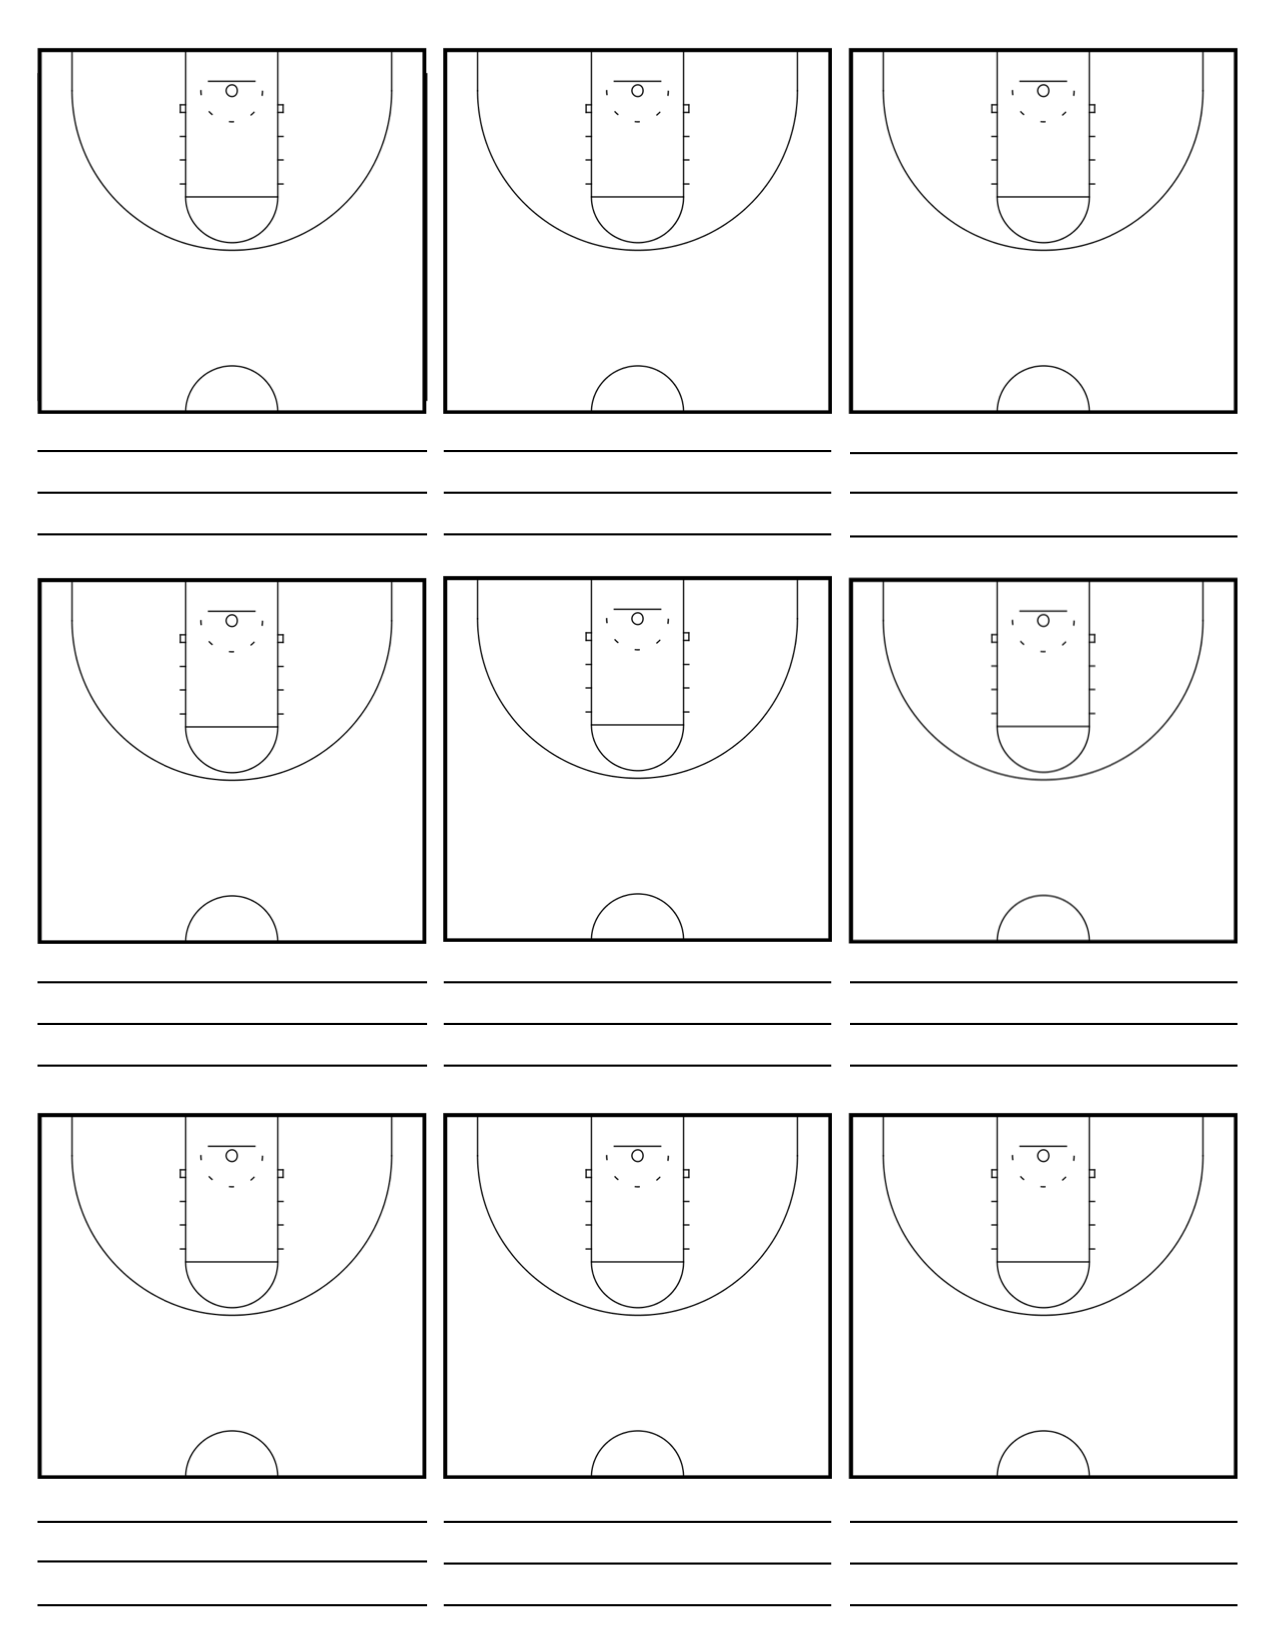 View 39 Basketball Court Diagrams With Notes